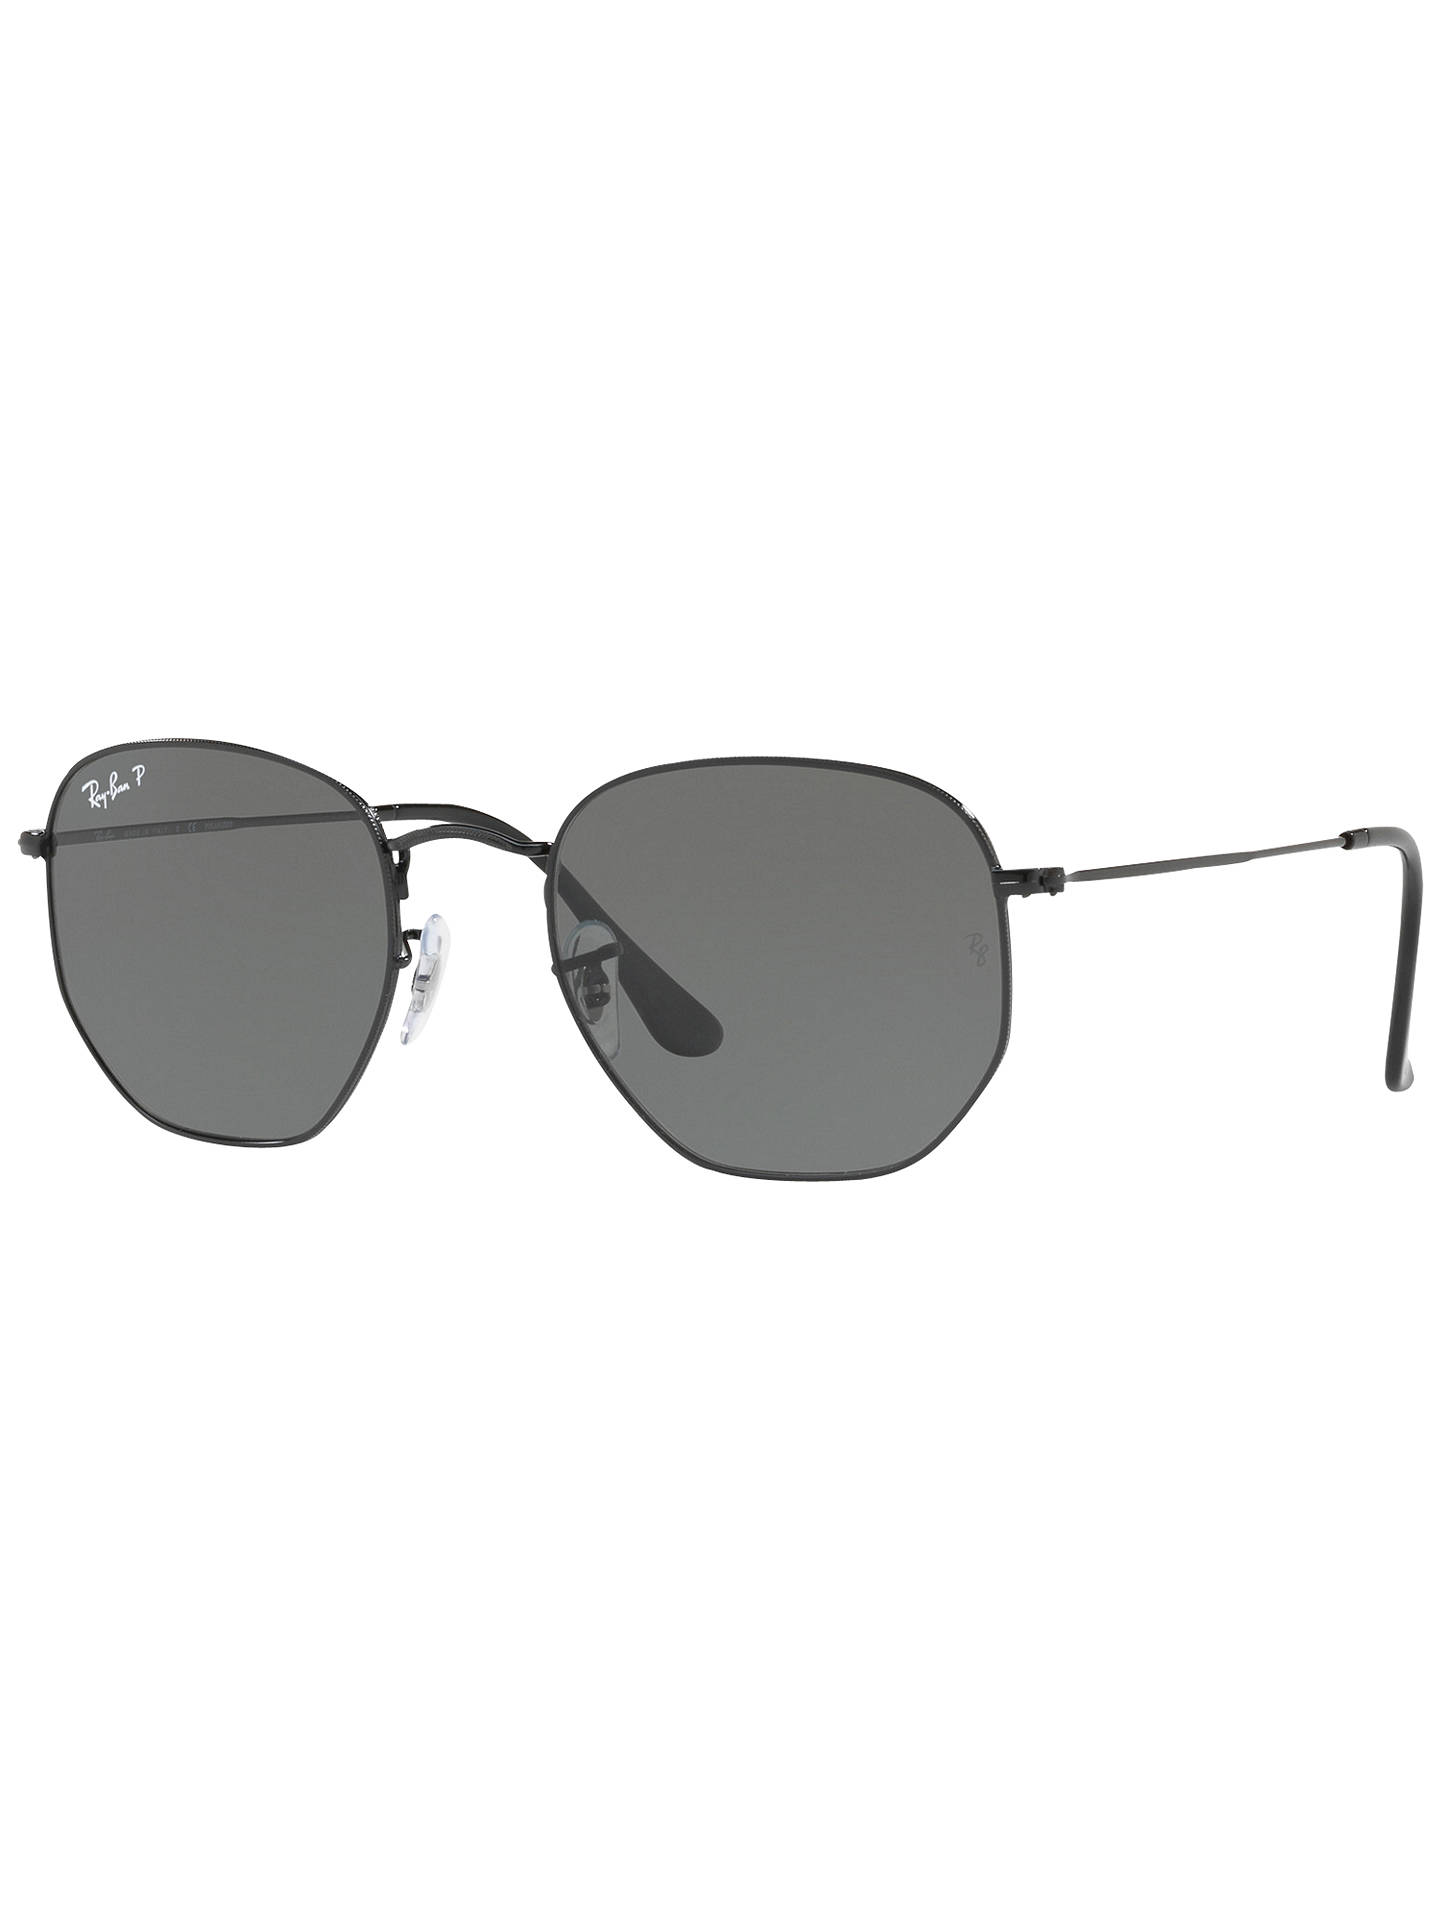 b037cb1738d Ray-Ban RB3548N Polarised Hexagonal Flat Lens Sunglasses at John ...